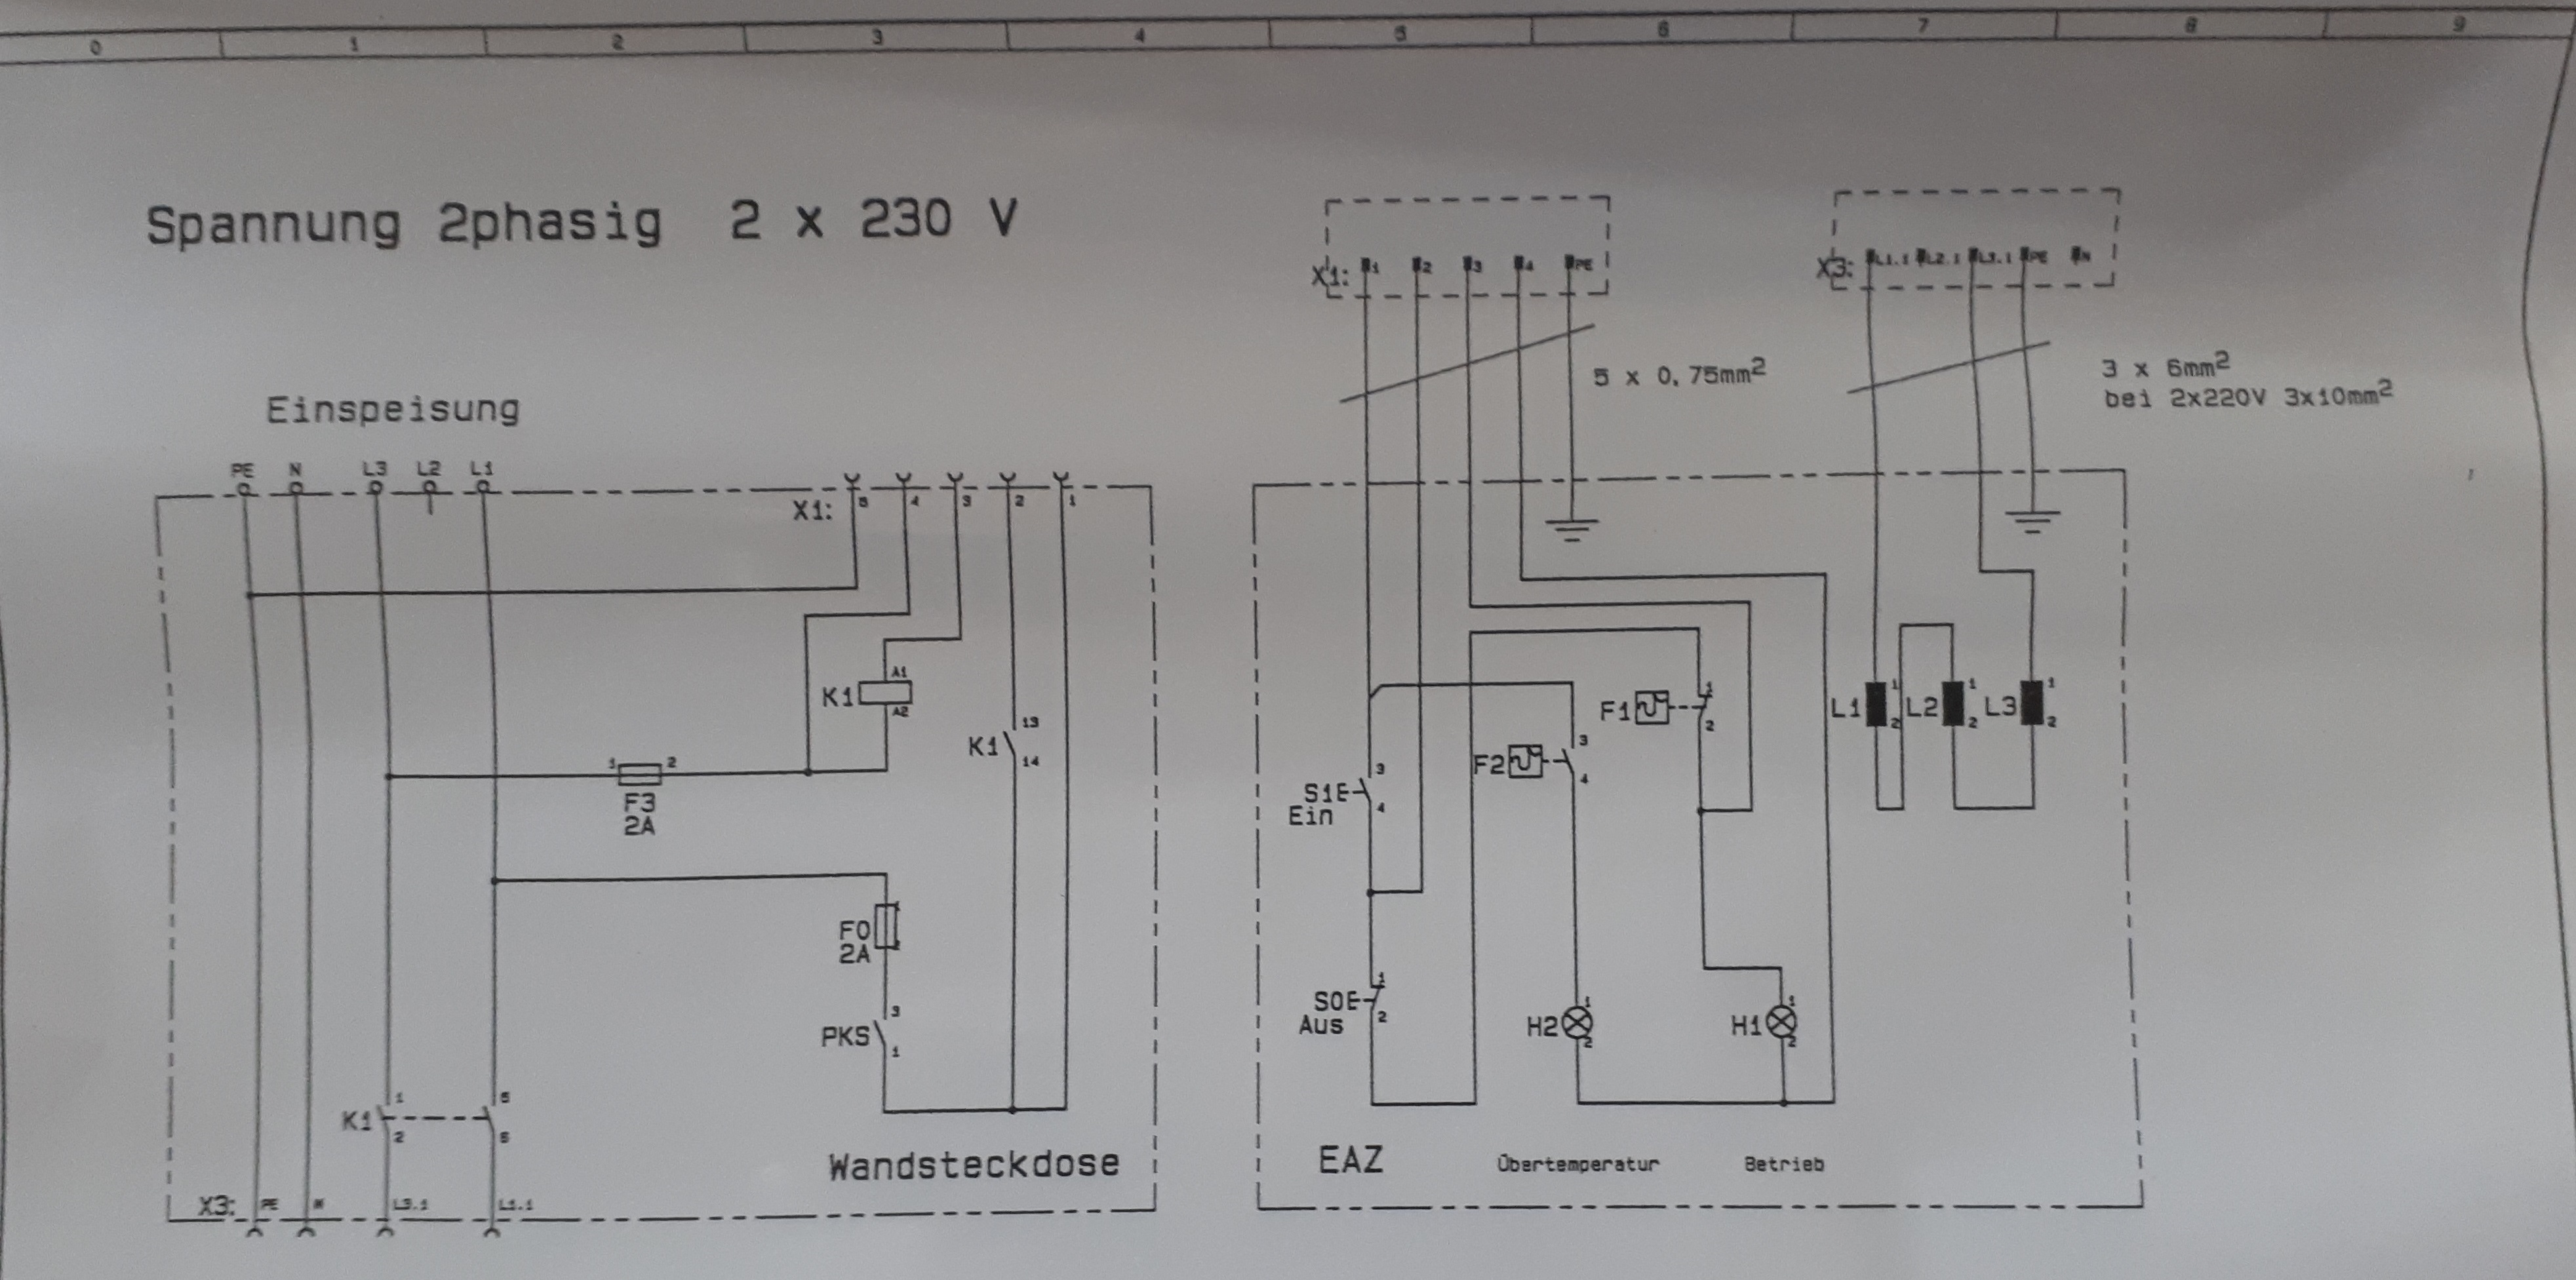 Wiring Diagram Wiring Diagram Spa Gfci Wiring Diagram 240 Volt Motor